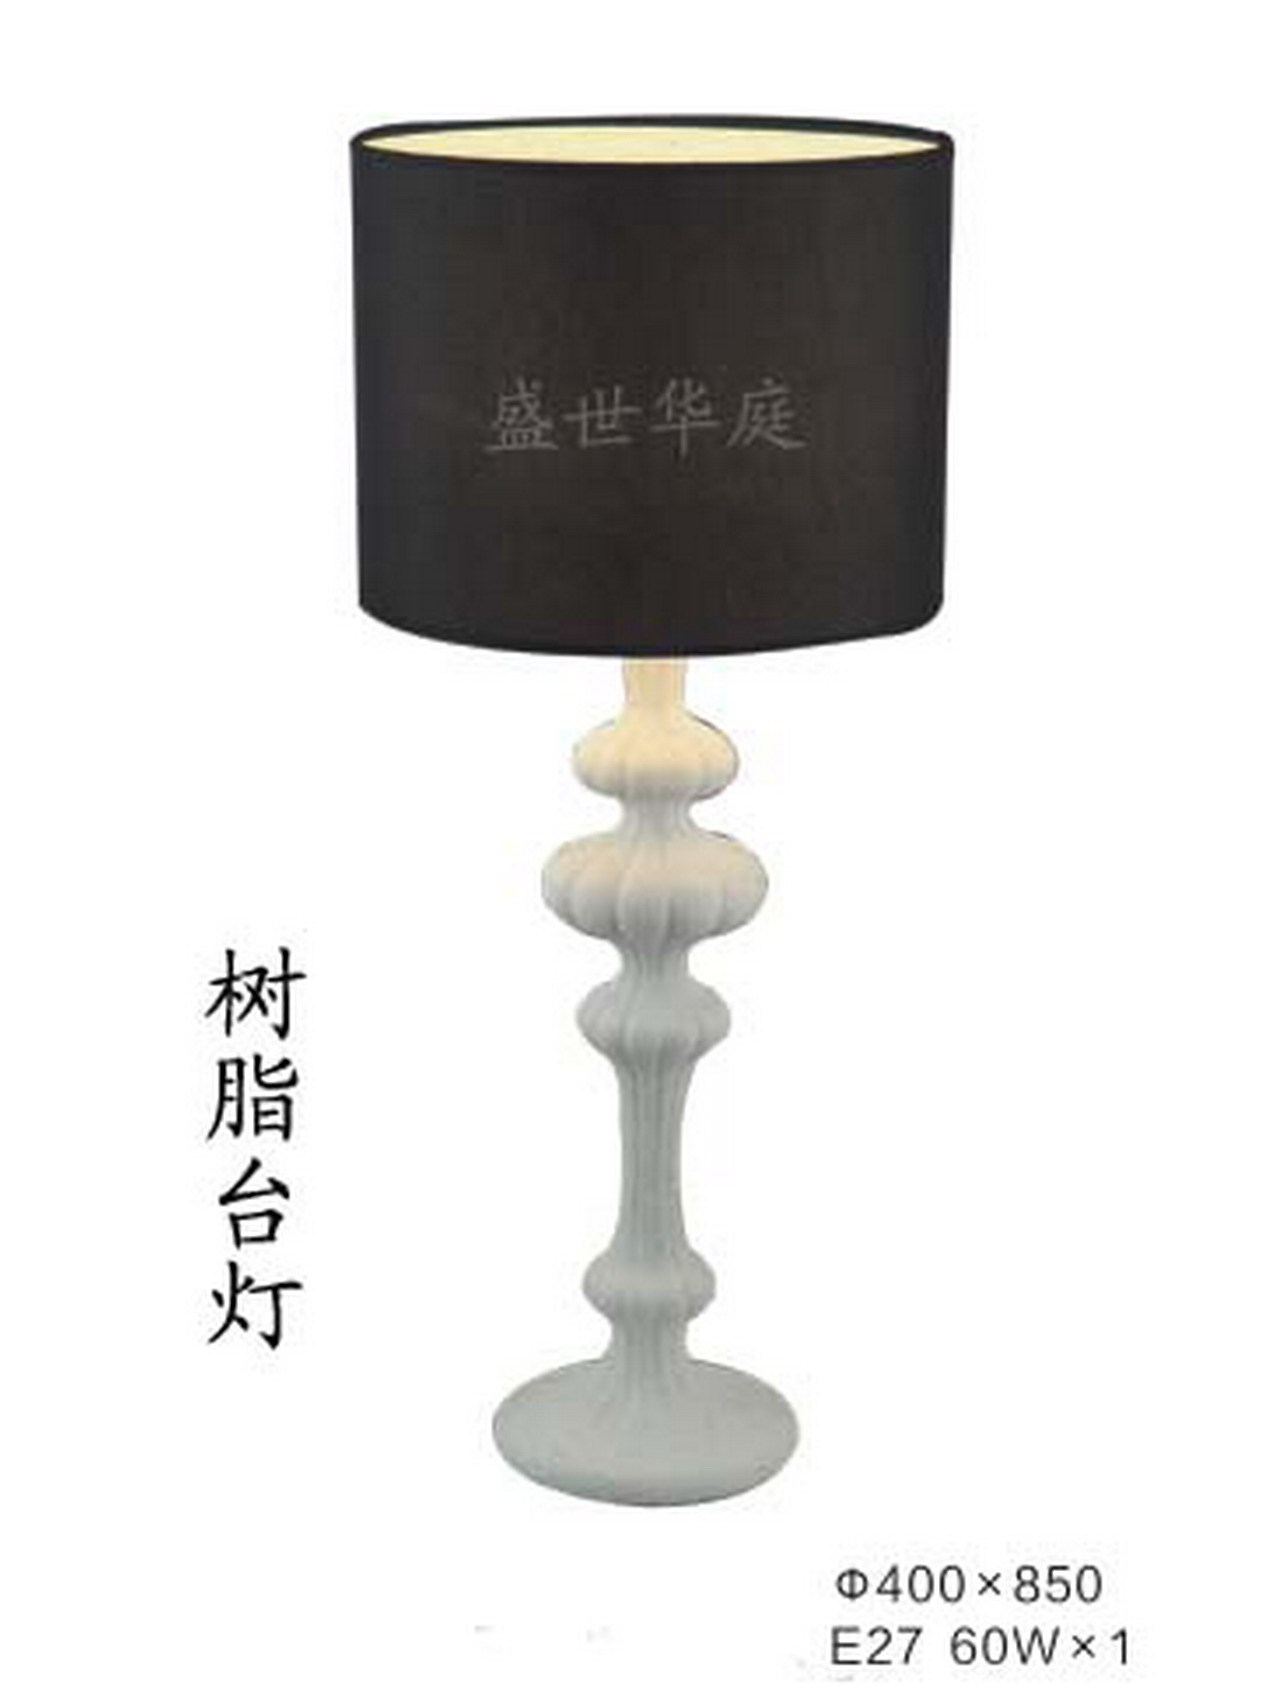 new arrival Resin table lamp ofhead decoration table lamp lamps modern lighting bedroom lamp brief free shipping(China (Mainland))